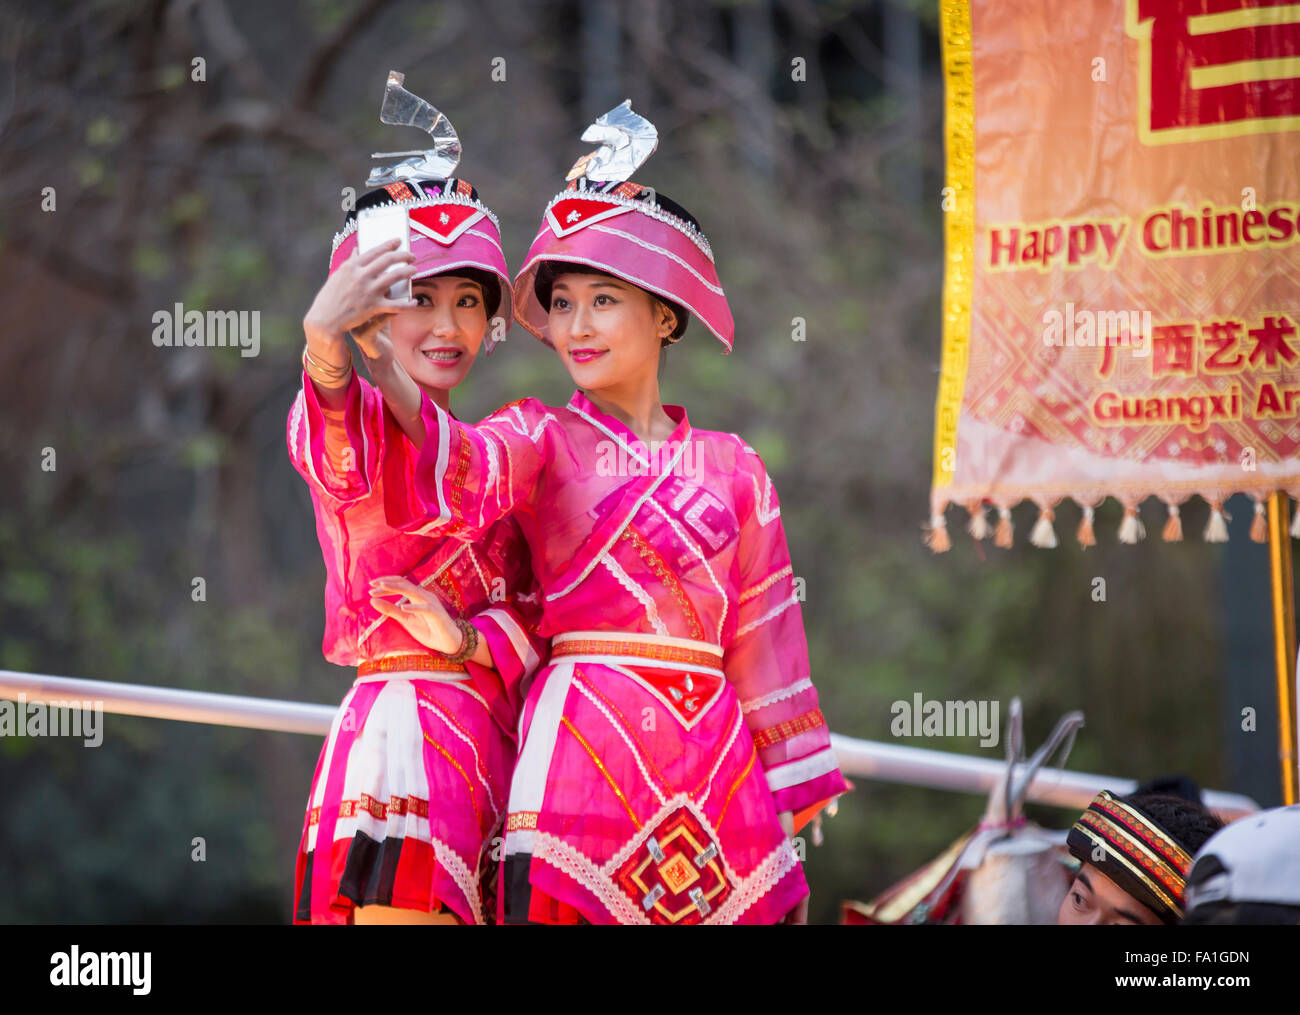 Chinese women dressed in colorful costumes taking a selfie atop float at San Francisco Chinese New Year parade. - Stock Image